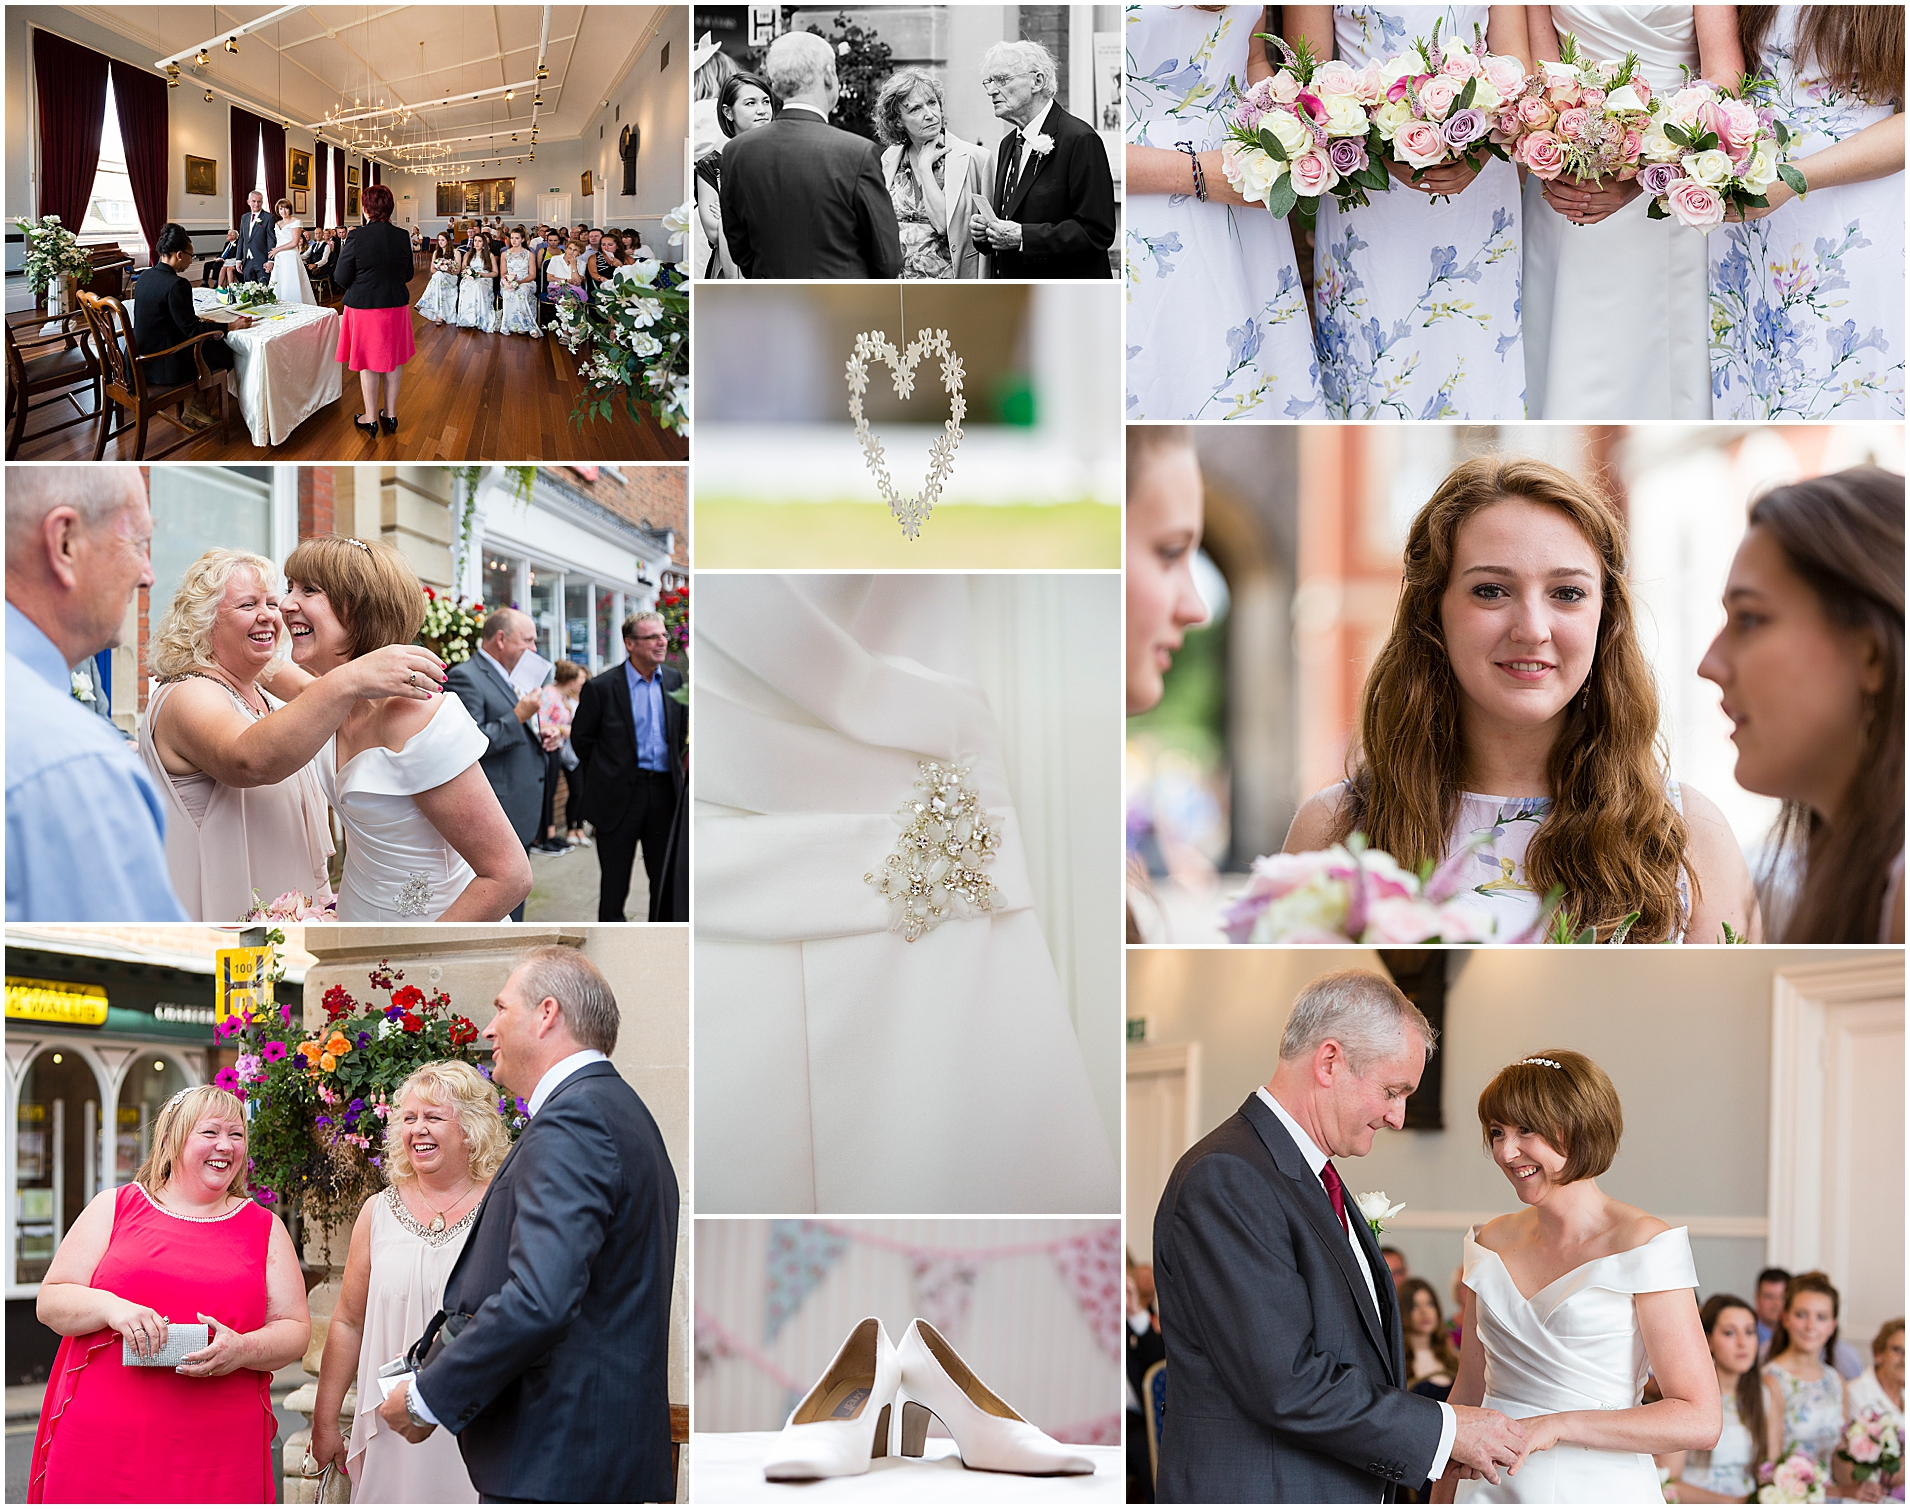 Jo Worthington Wedding photographer Hampshire